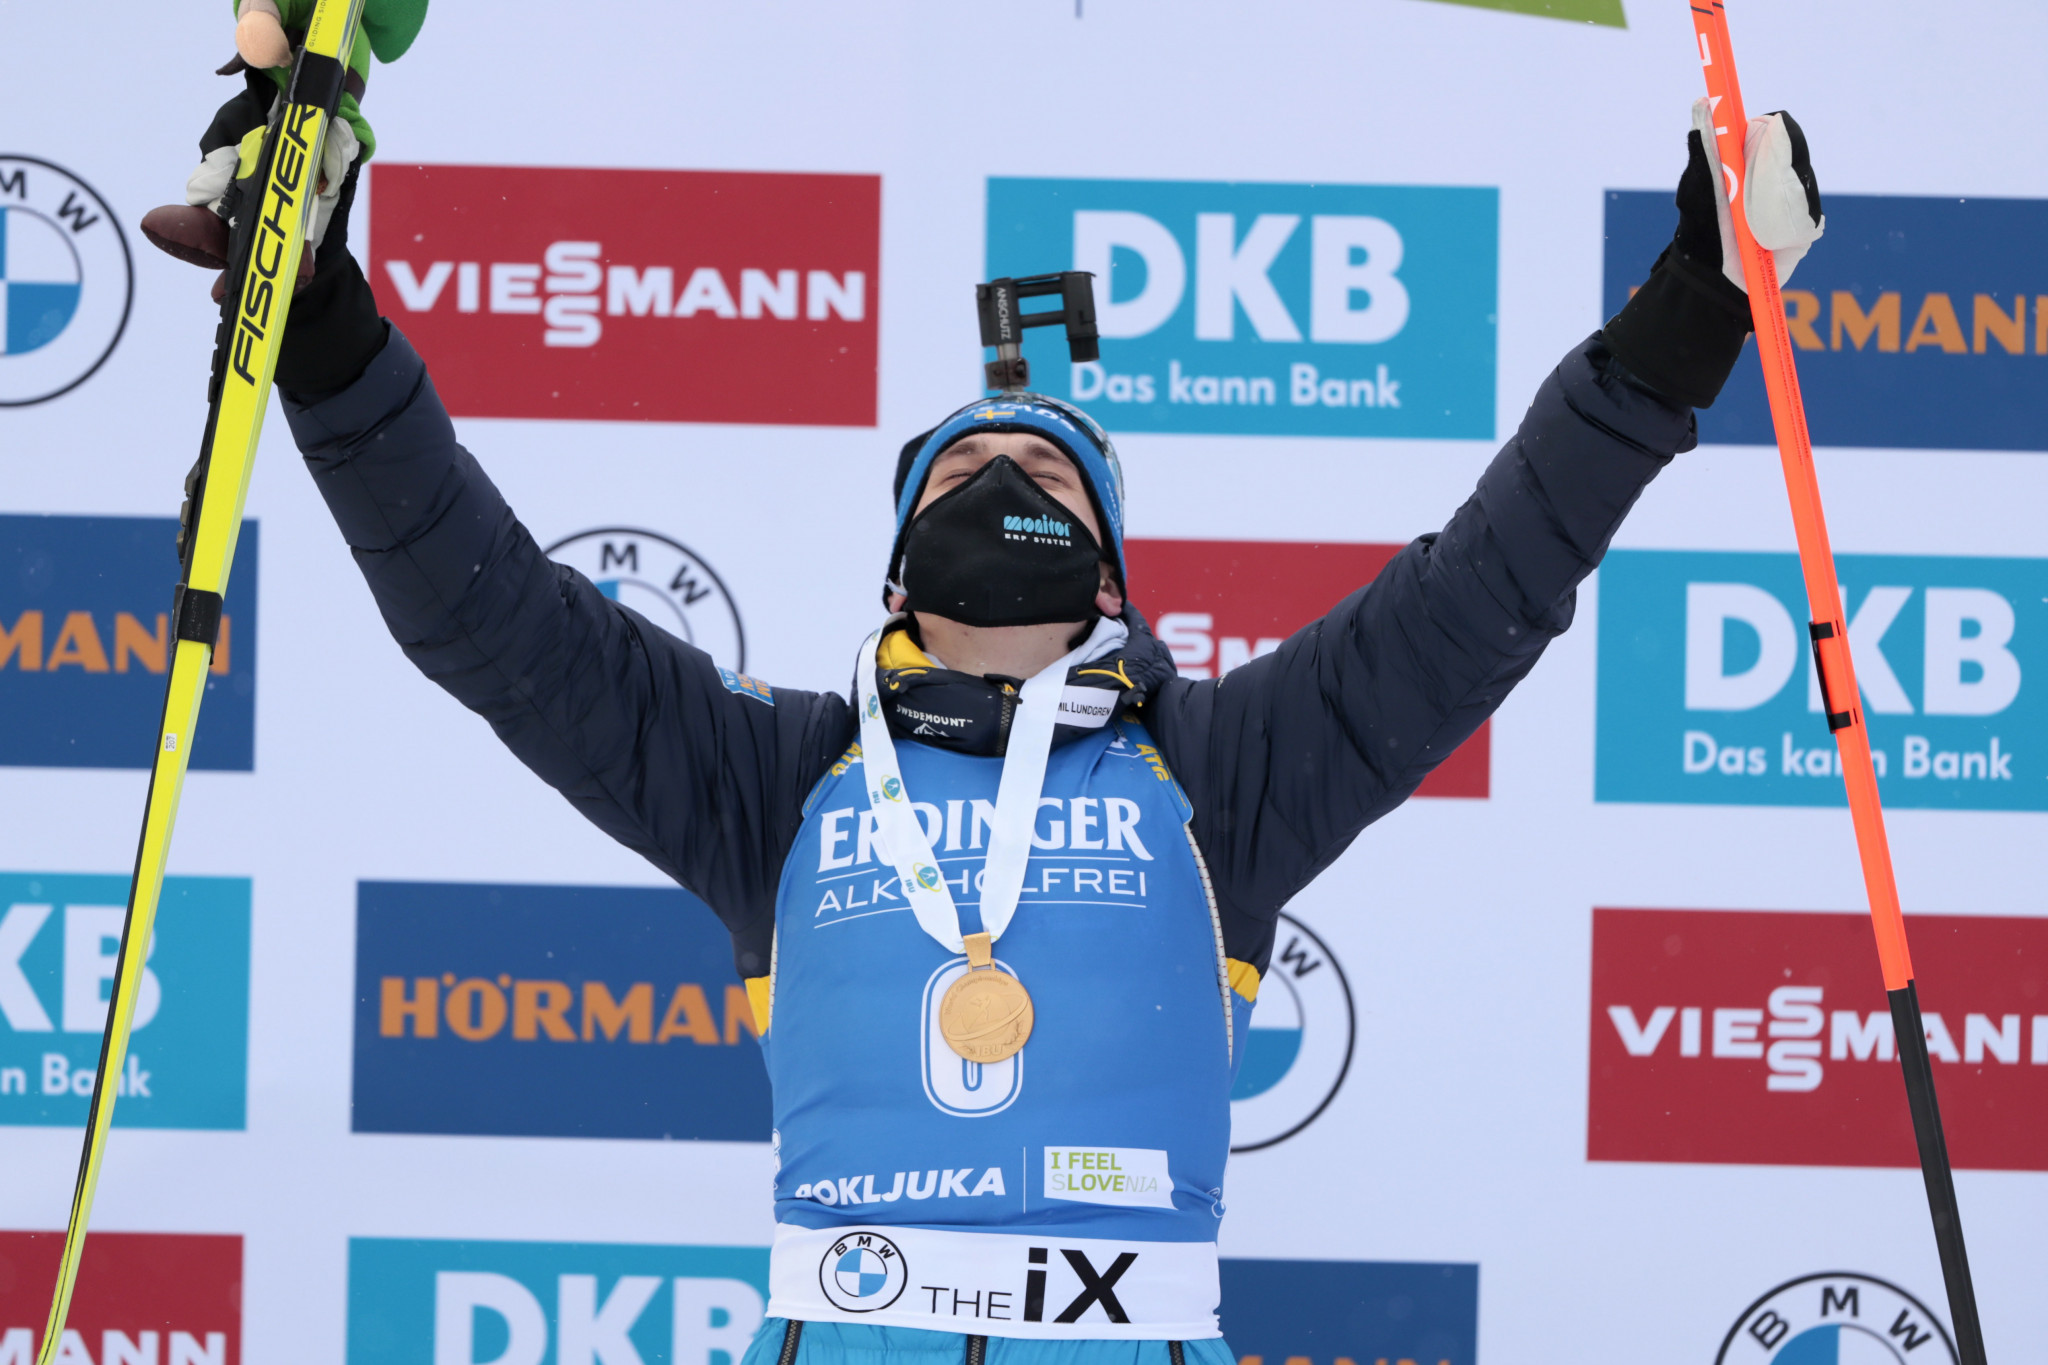 Sweden's Ponsiluoma clinches men's sprint gold at IBU World Championships